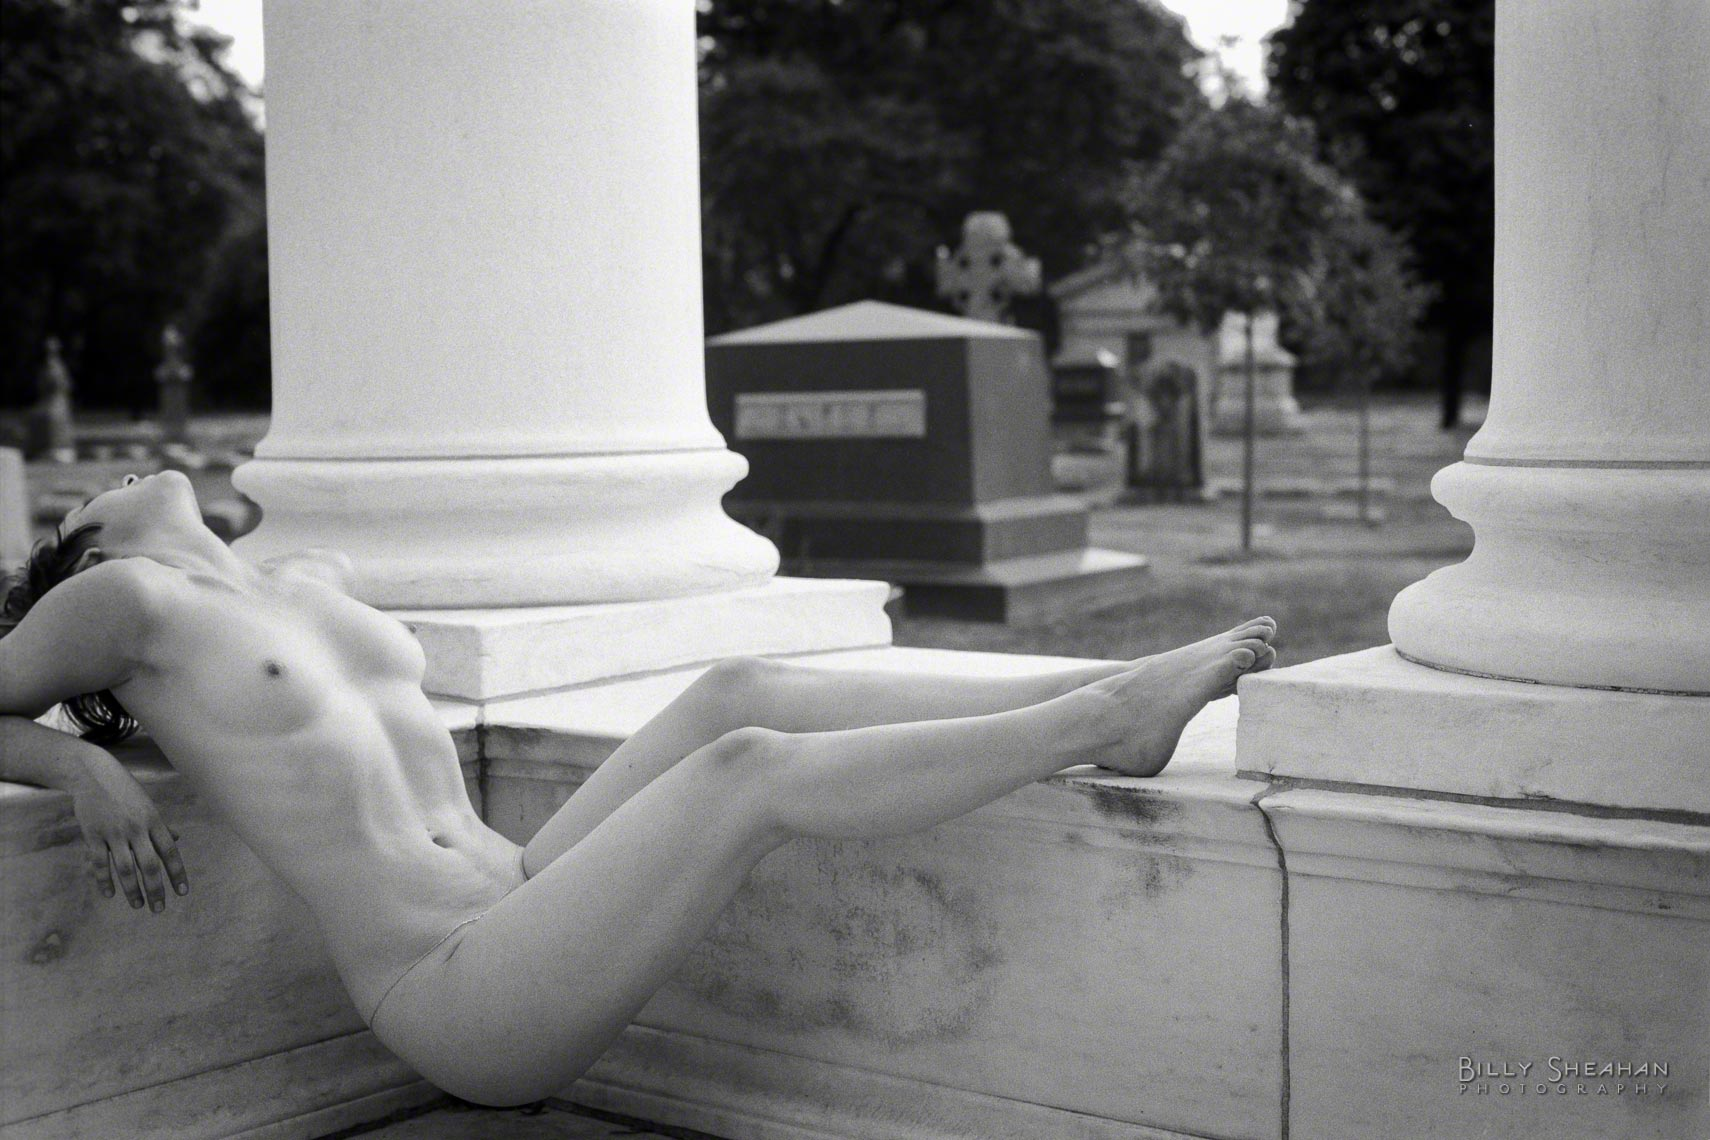 Melissa_at_Graceland_Cemetery_MelissaGraceland_10Sep2000_939_0026_BW_D.jpg